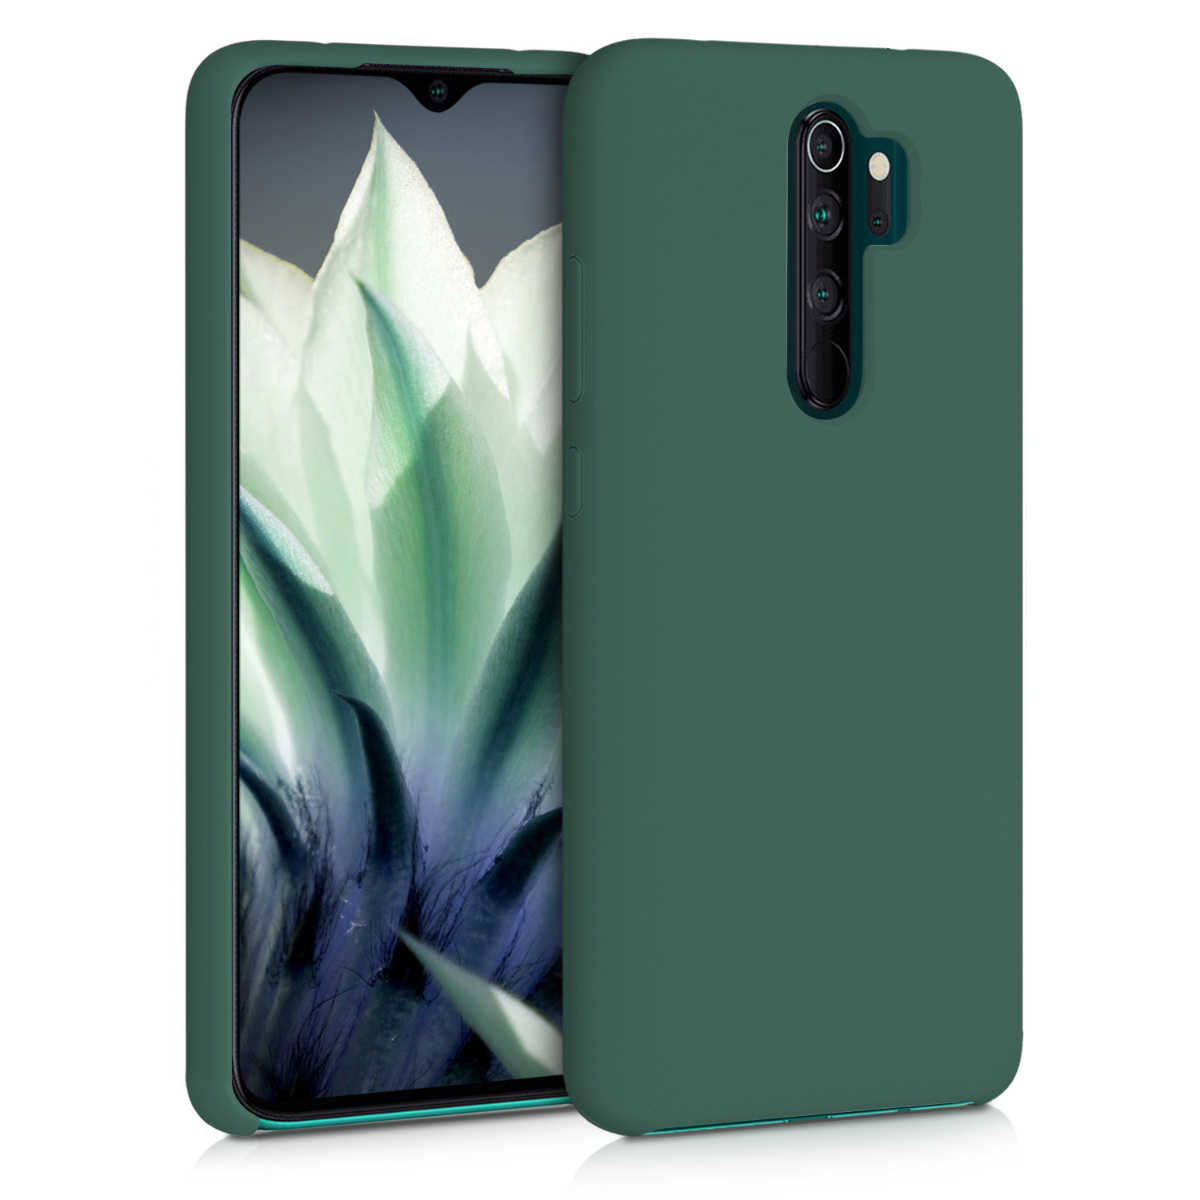 KW Θήκη Σιλικόνης Xiaomi Redmi Note 8 Pro - Soft Flexible Rubber Protective Cover - Forest Green (50248.166)